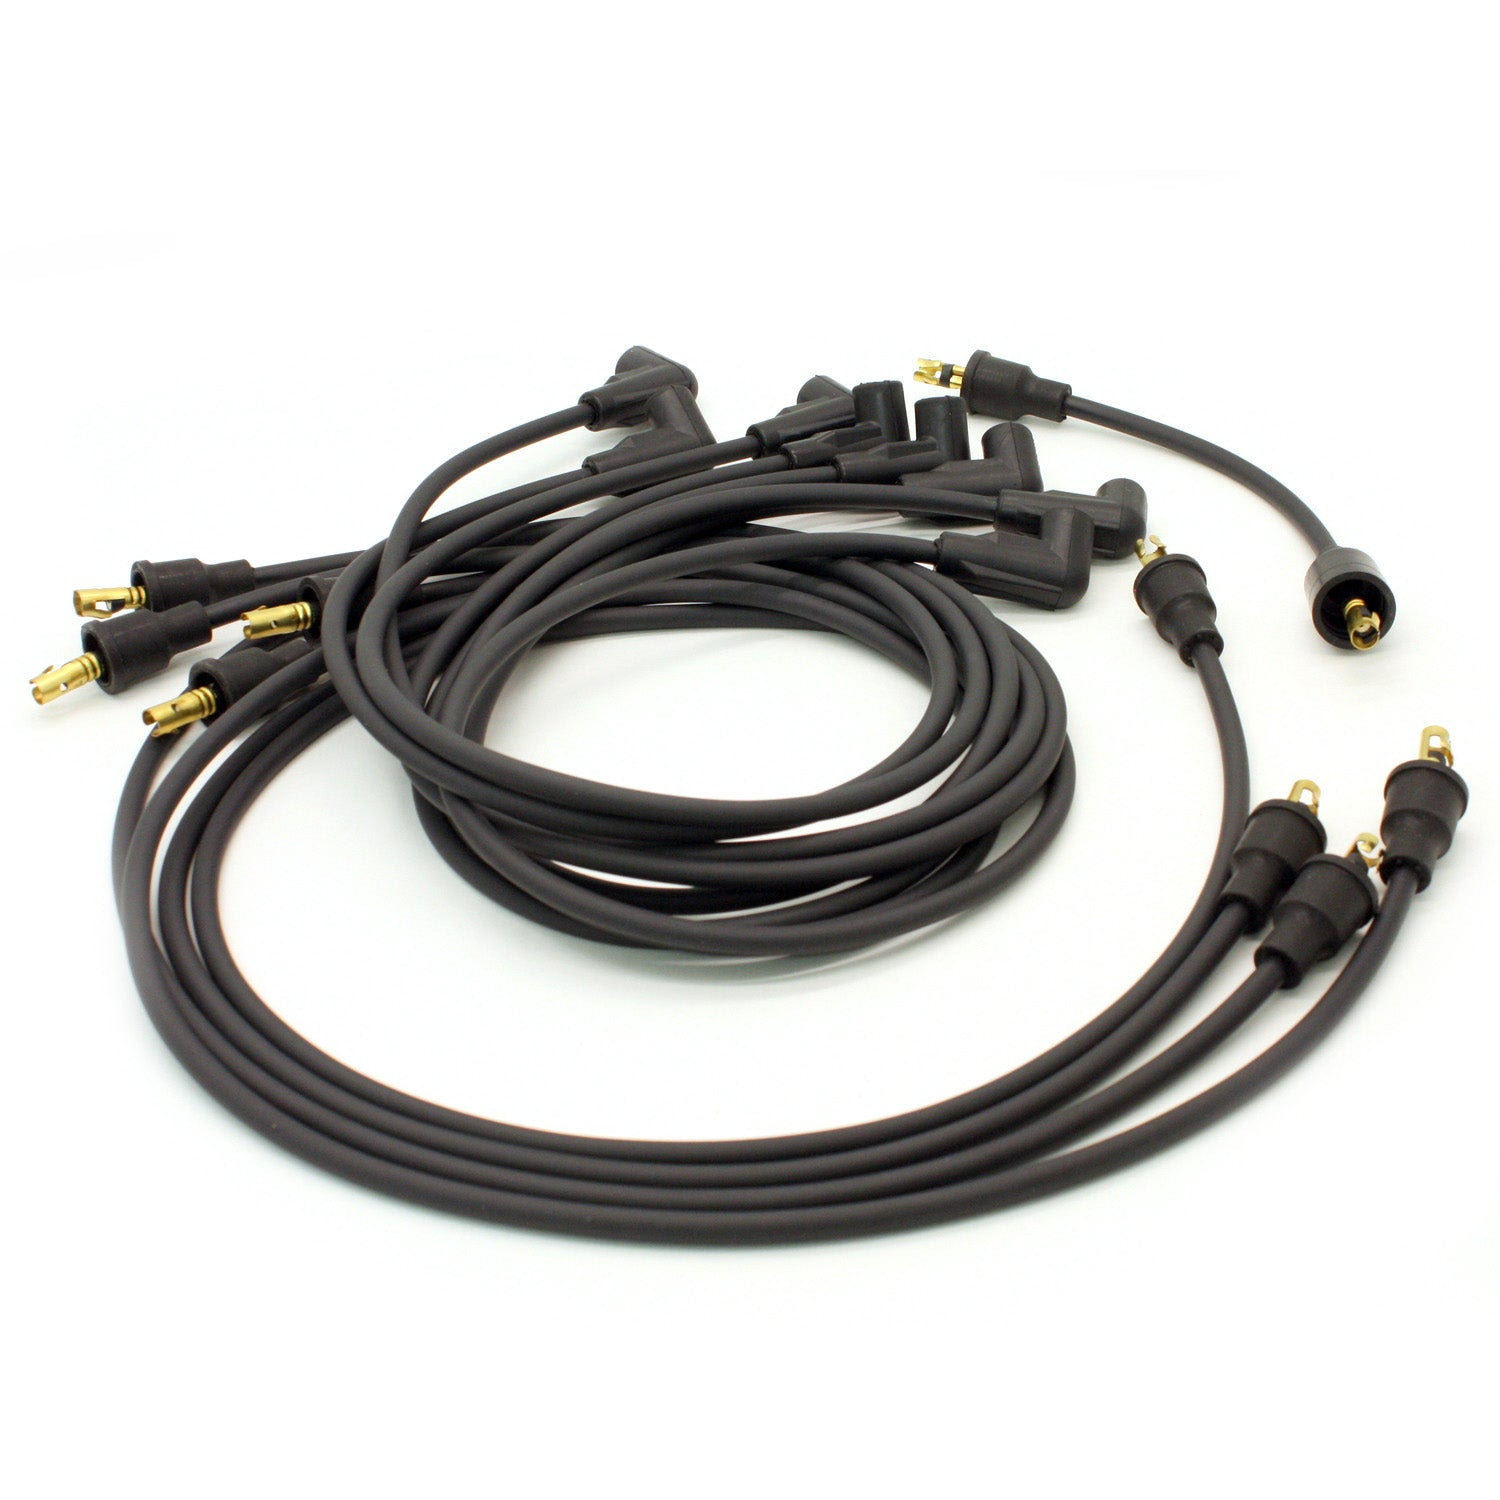 PerTronix 708101 Flame-Thrower Spark Plug Wires 8 cyl GM Custom Fit Black